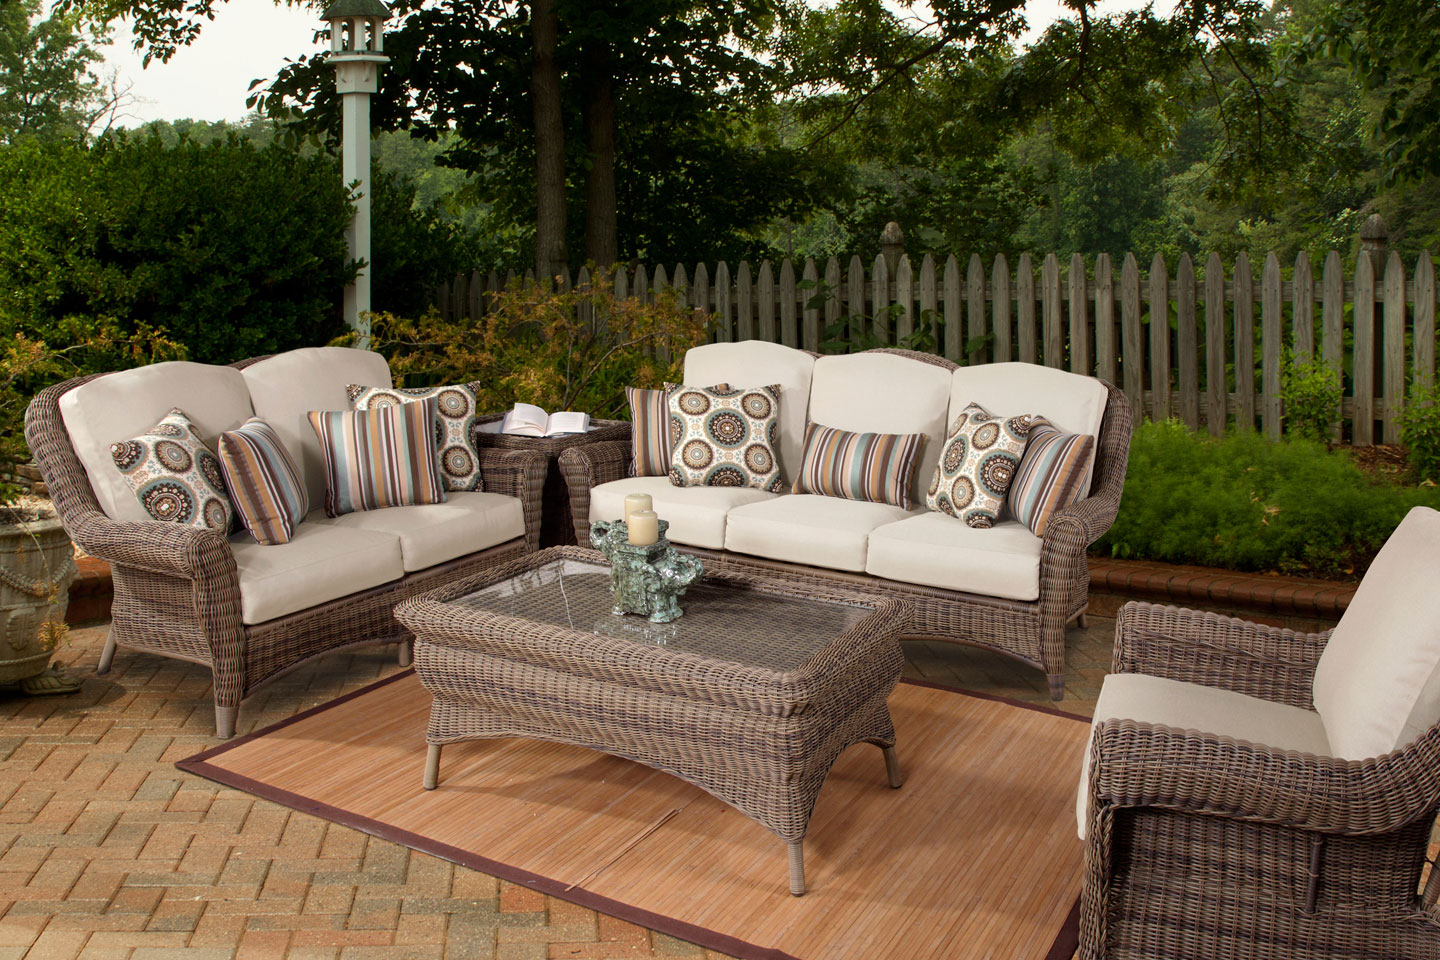 Amalfi Outdoor Patio Resin Wicker Furniture Collection. Clubfurniture